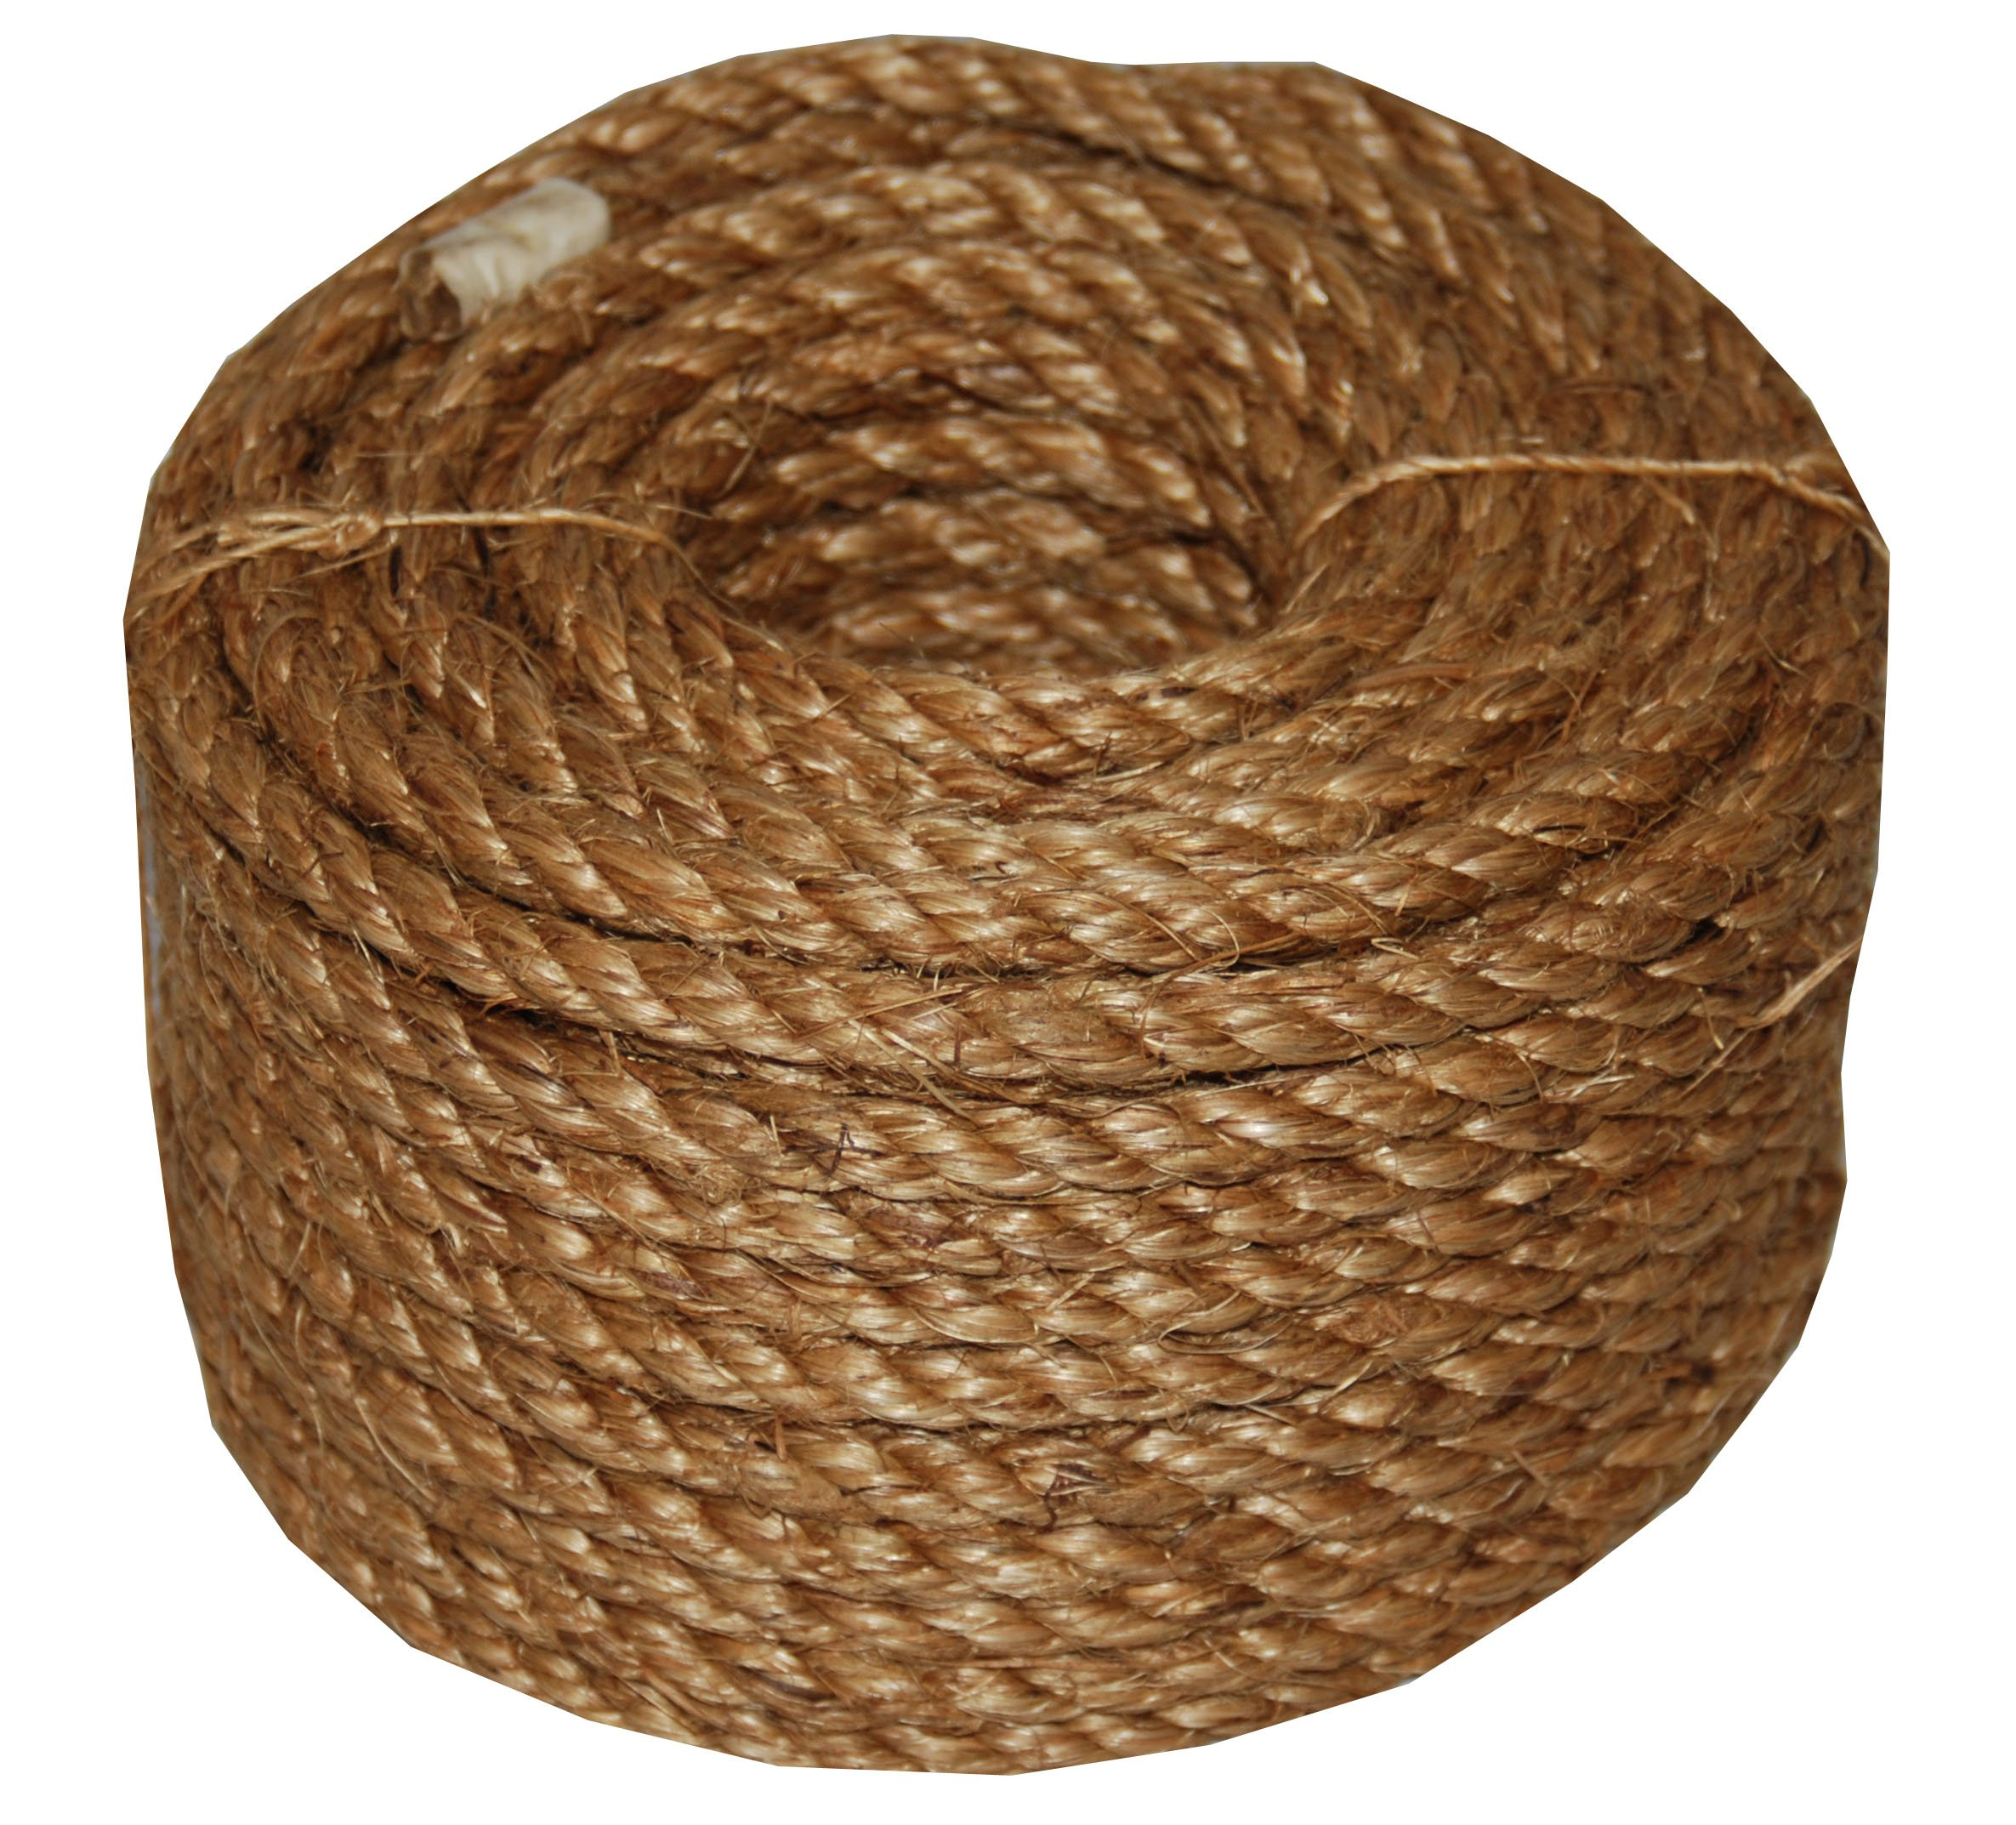 T.W Evans Cordage 26-063 3/4-Inch by 50-Feet 5 Star Manila Rope by T.W . Evans Cordage Co.